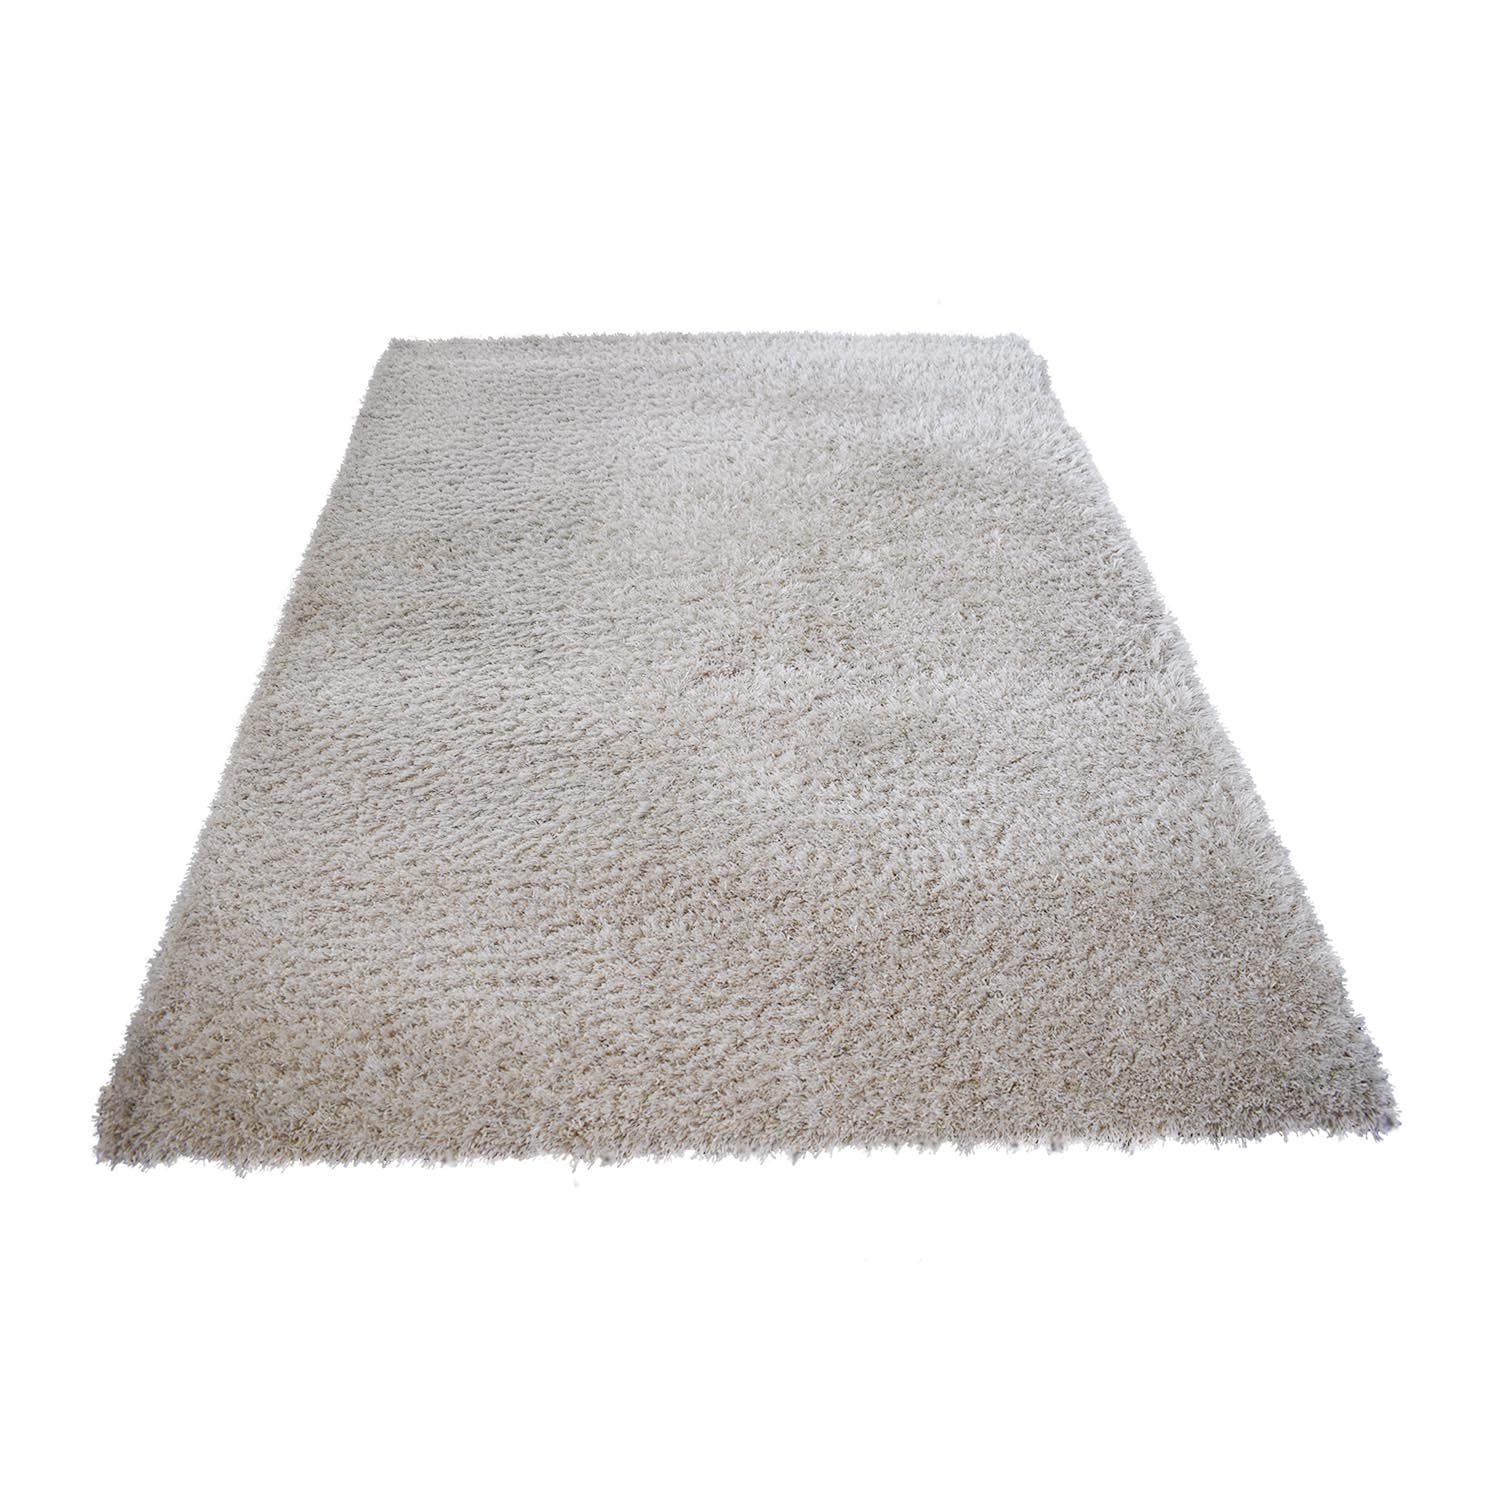 Rugs At Home Goods: HomeGoods HomeGoods White Shag Rug / Decor